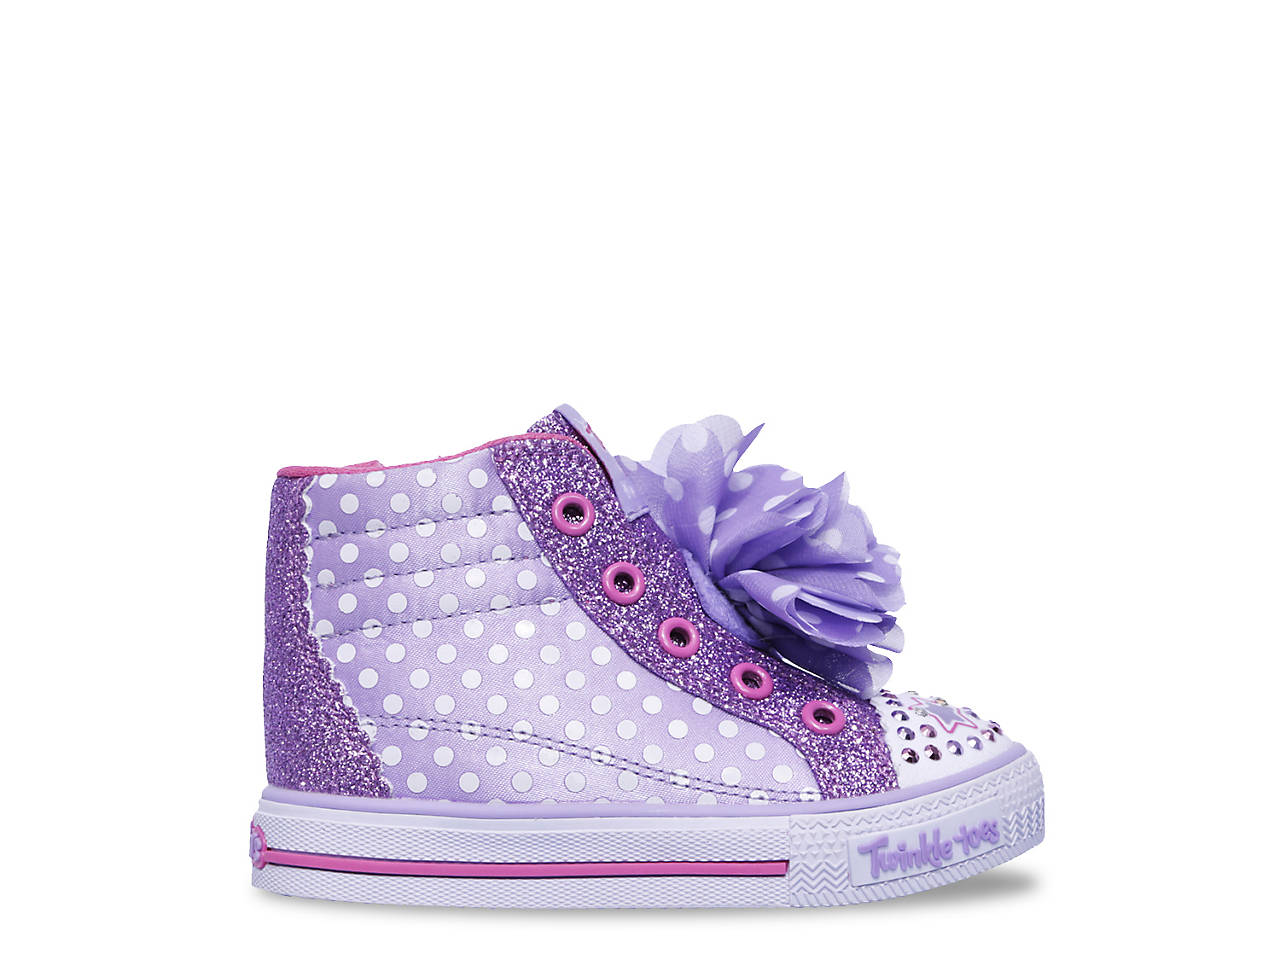 Skechers Twinkle Toes Shuffles Flower Fun Light Up Sneaker